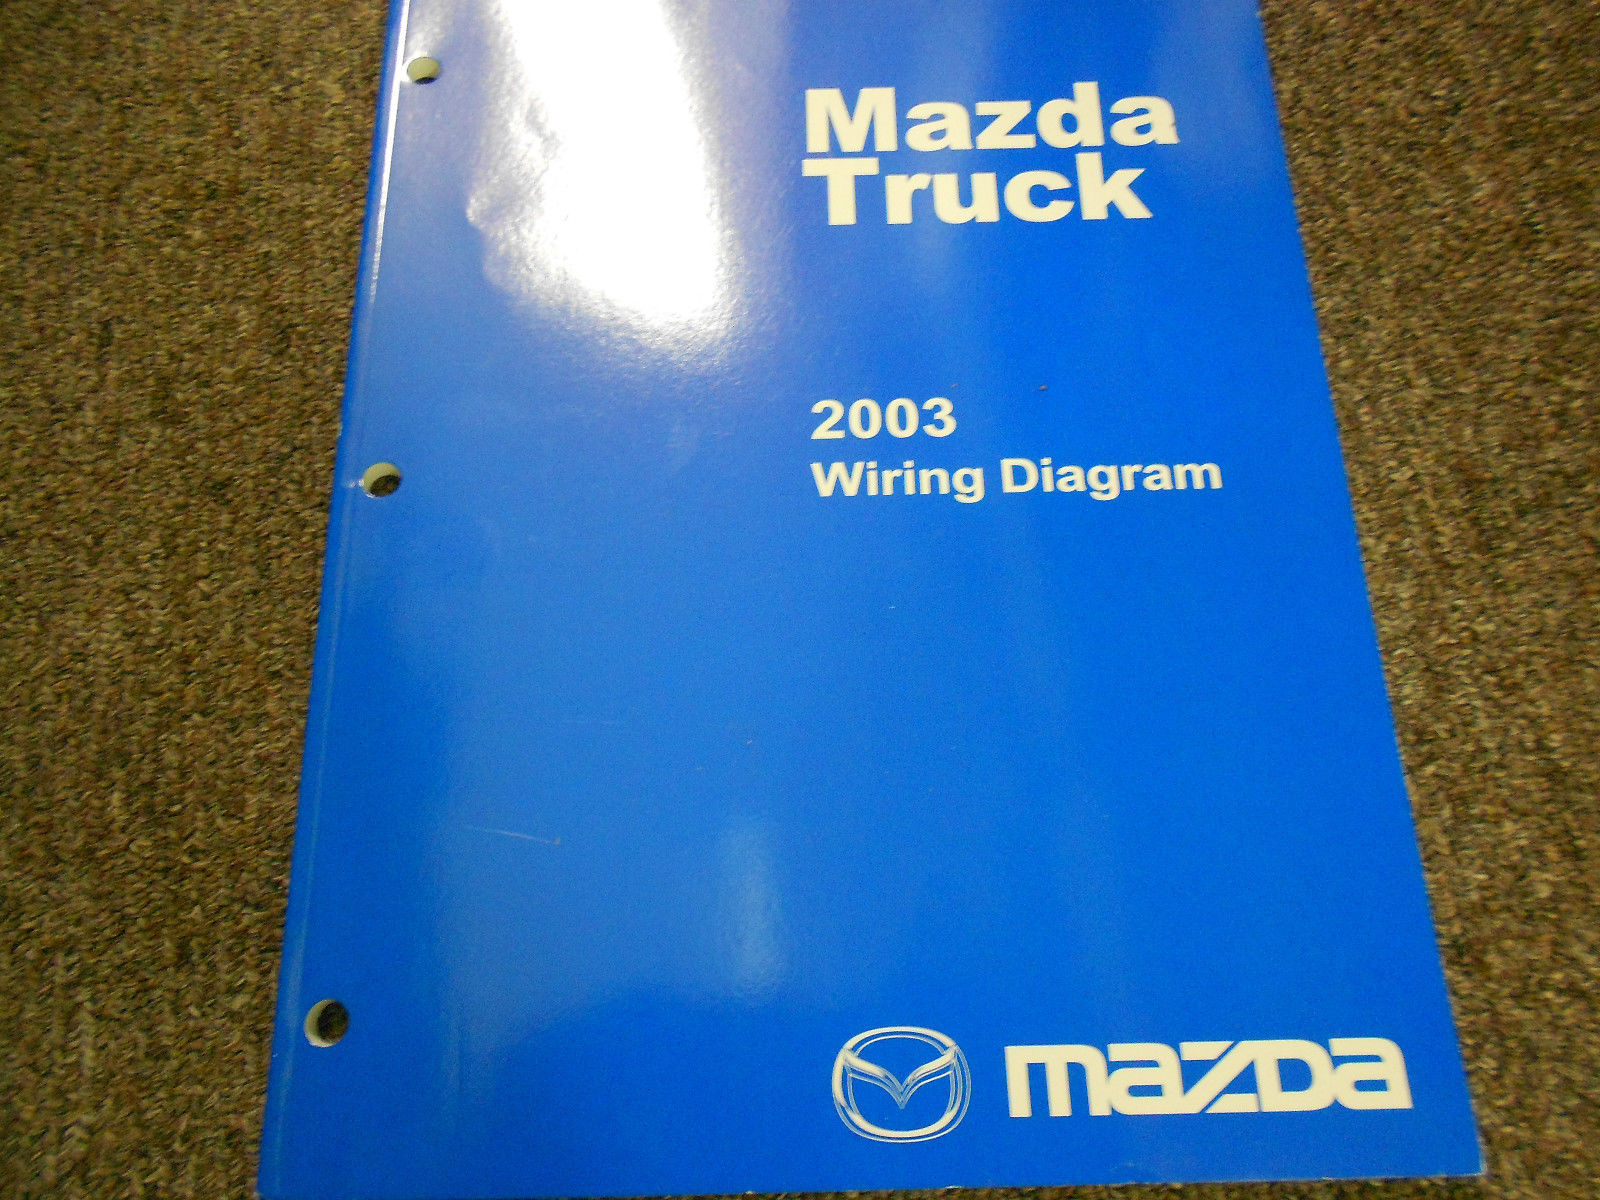 Primary image for 2003 Mazda Truck Electrical Wiring Diagram Service Repair Shop Manual FACTORY 03